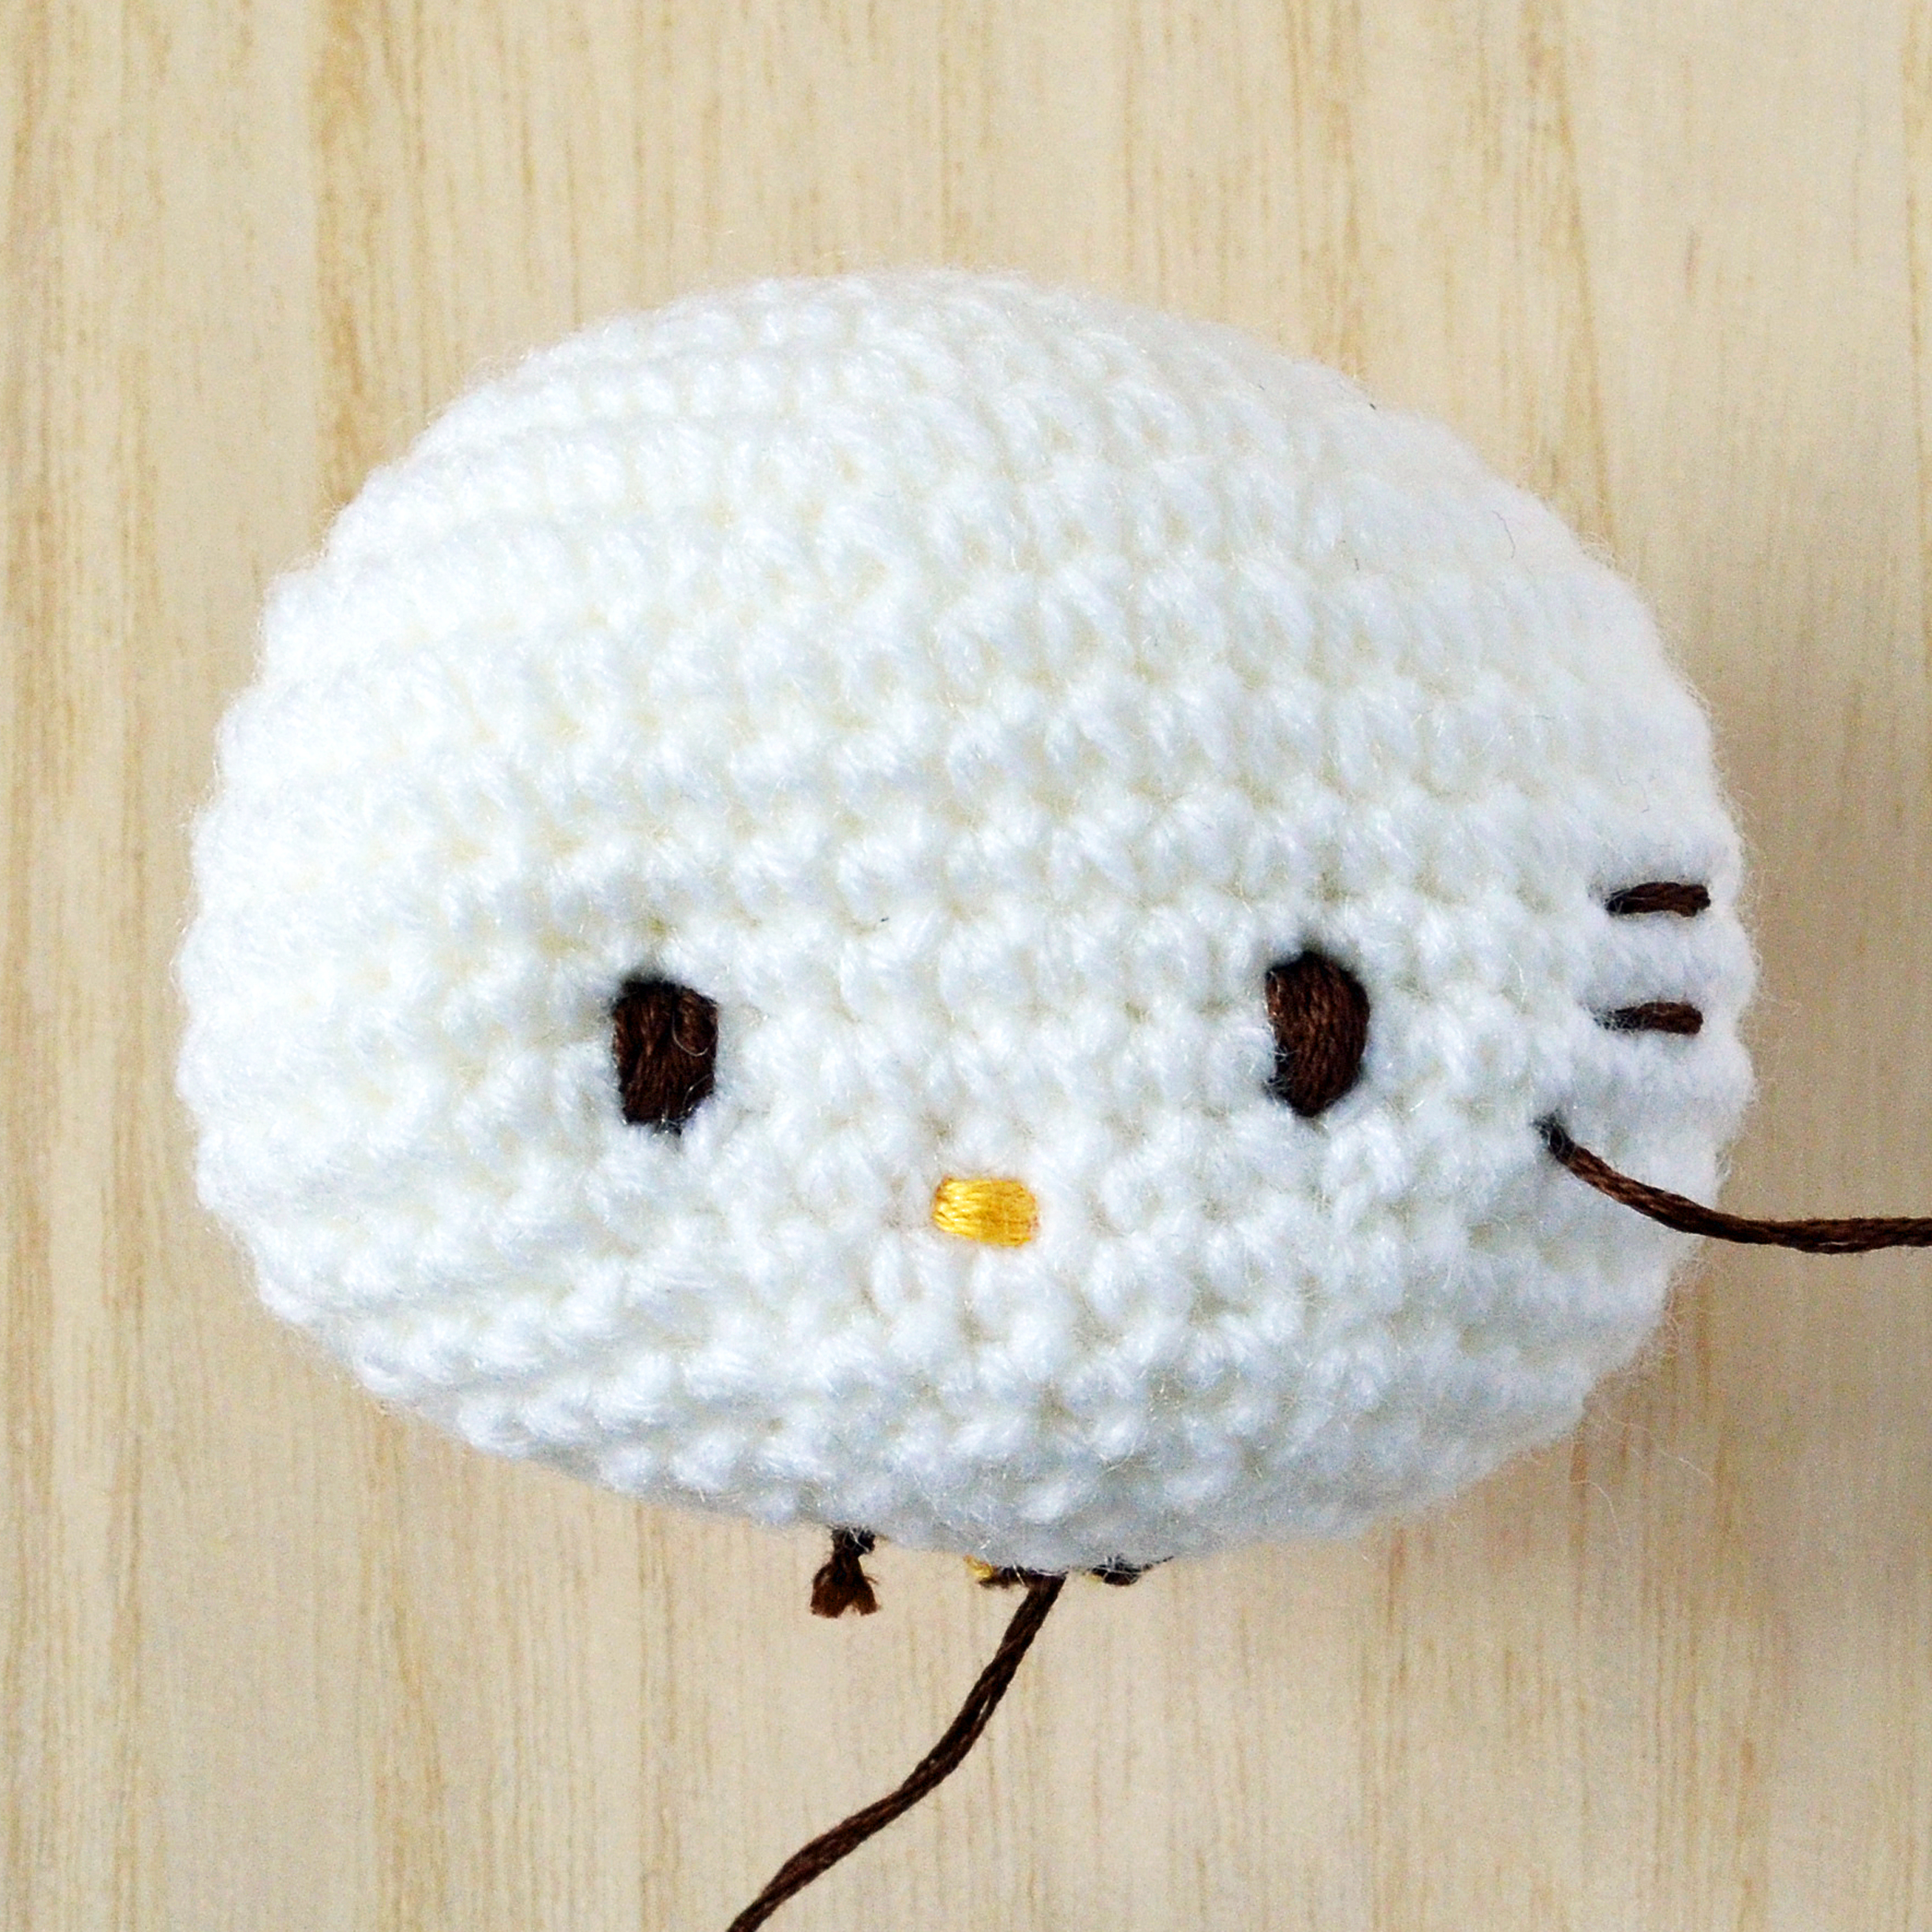 Amigurumi Nose and Mouth - Tutorial by desiree | Amigurumi, Como bordar,  Patrones amigurumi | 2450x2450